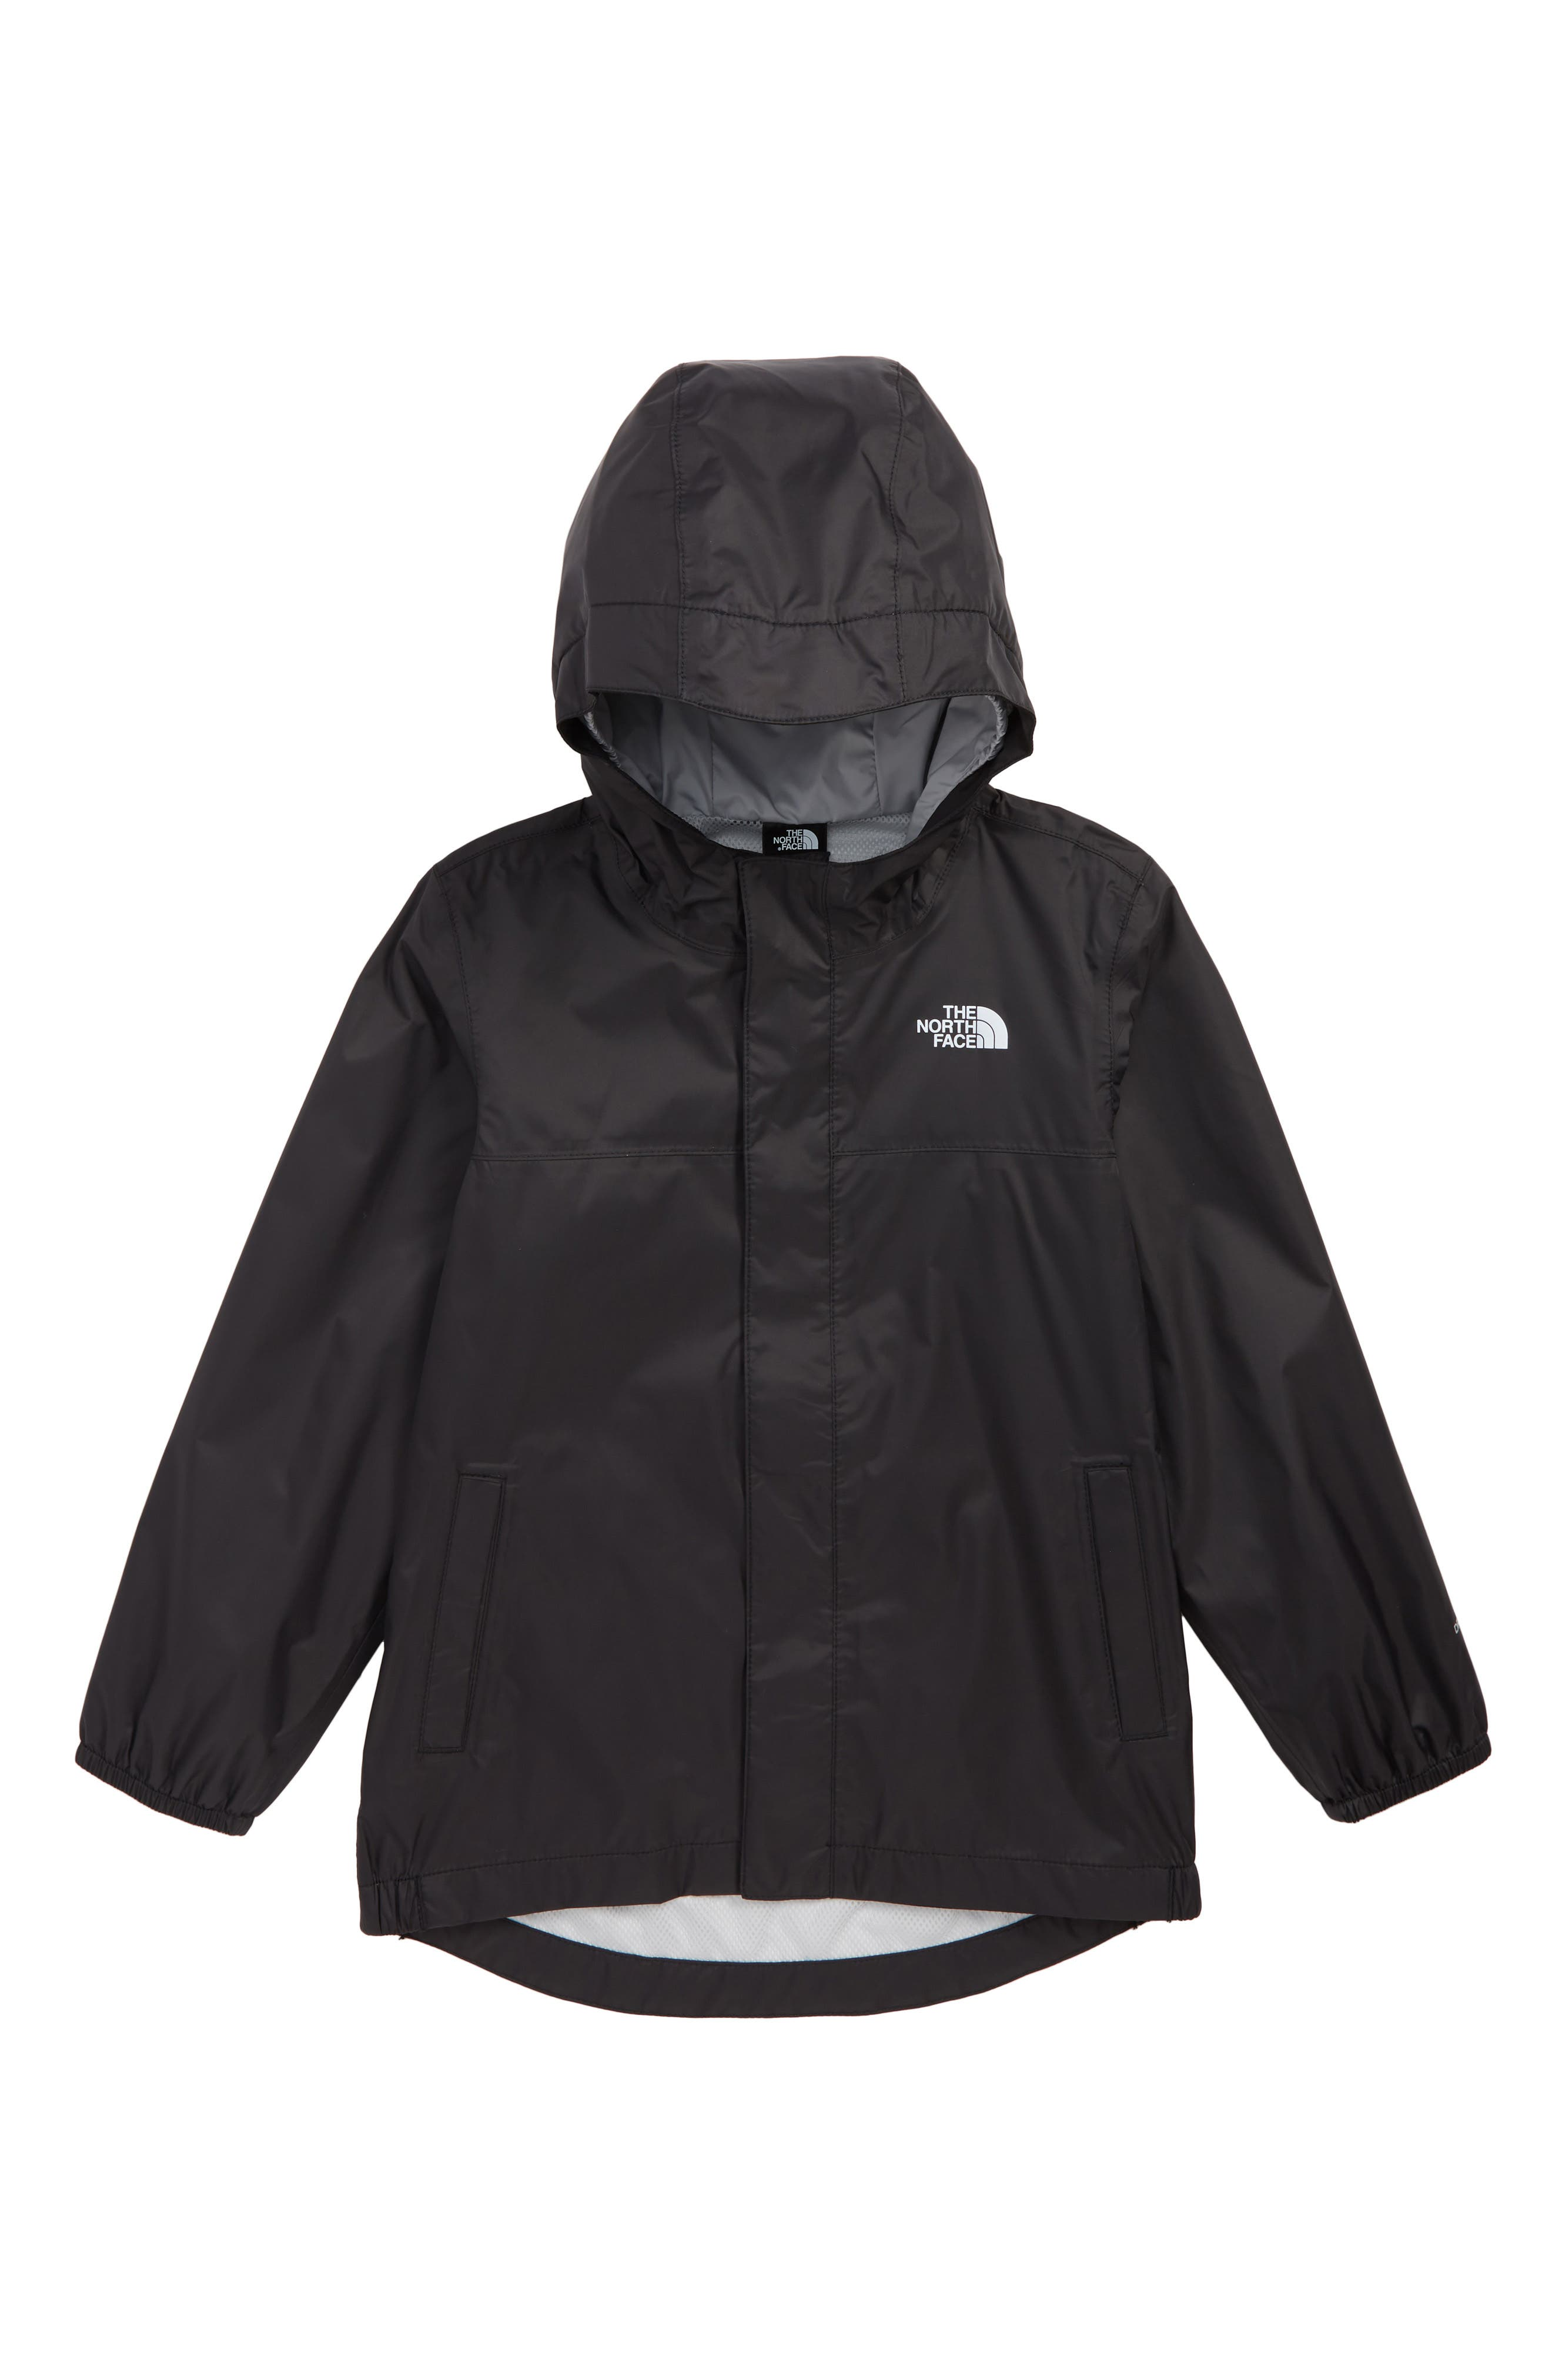 Tailout Hooded Rain Jacket,                             Main thumbnail 1, color,                             001